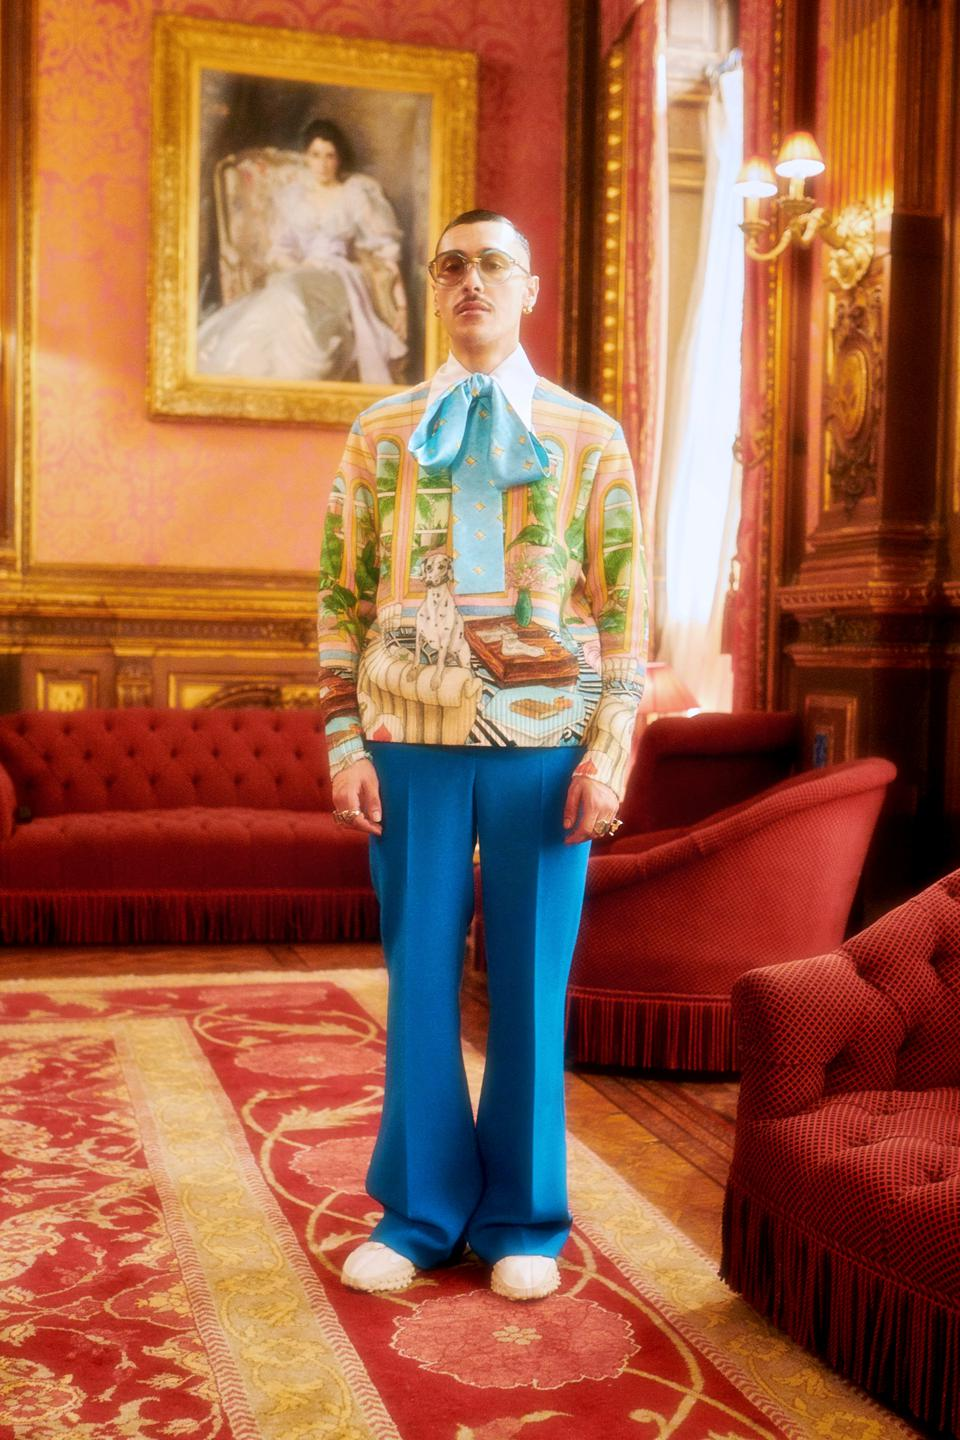 A male model wearing a colorful sweater with a bow and blue pants from the Casablanca ″Grand Prix.″collection.